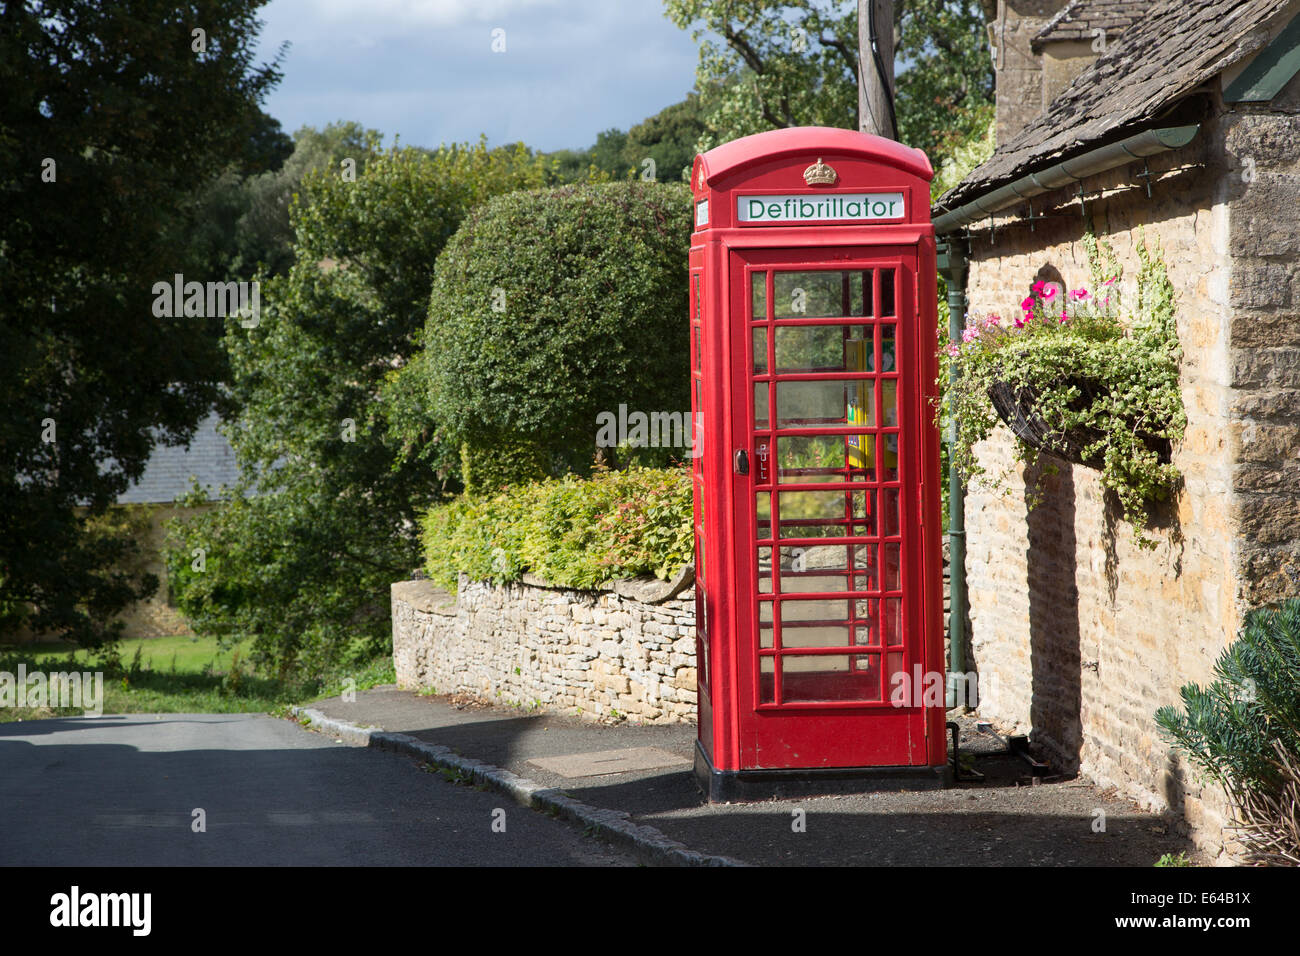 Telephone kiosk now housing a defibrillator - Stock Image